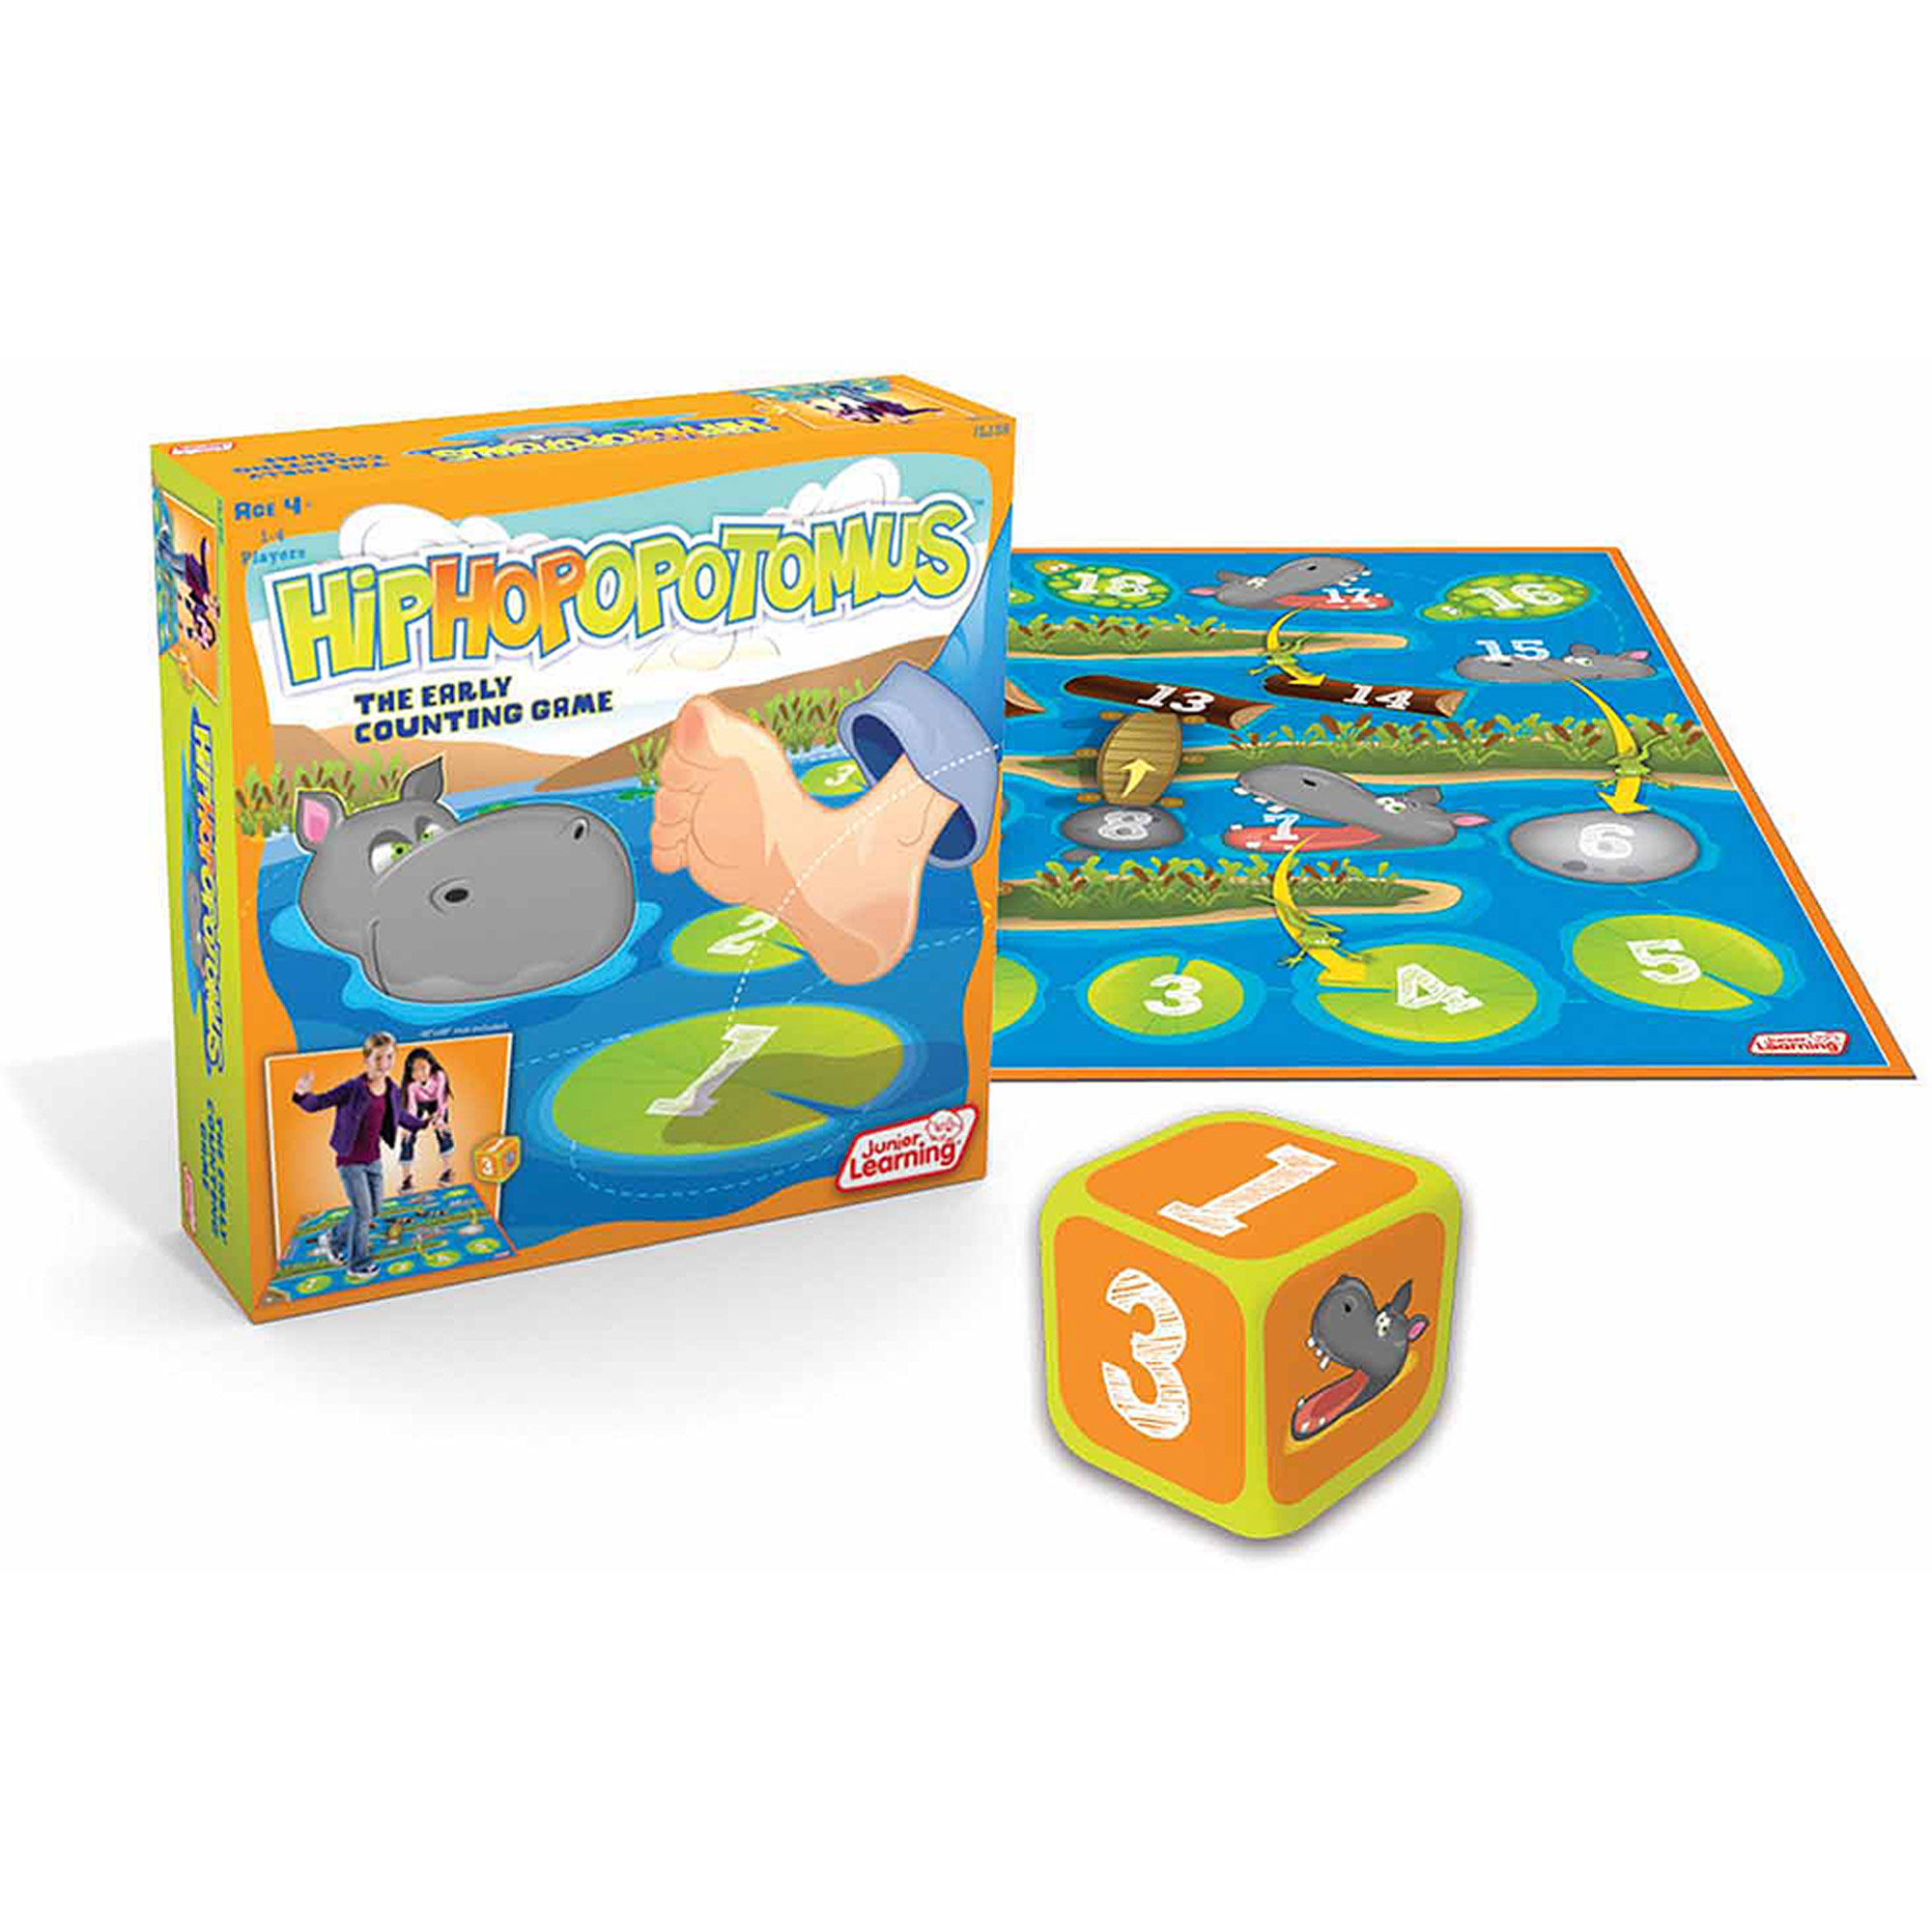 Junior Learning Hiphopopotamus, The Early Counting Game!